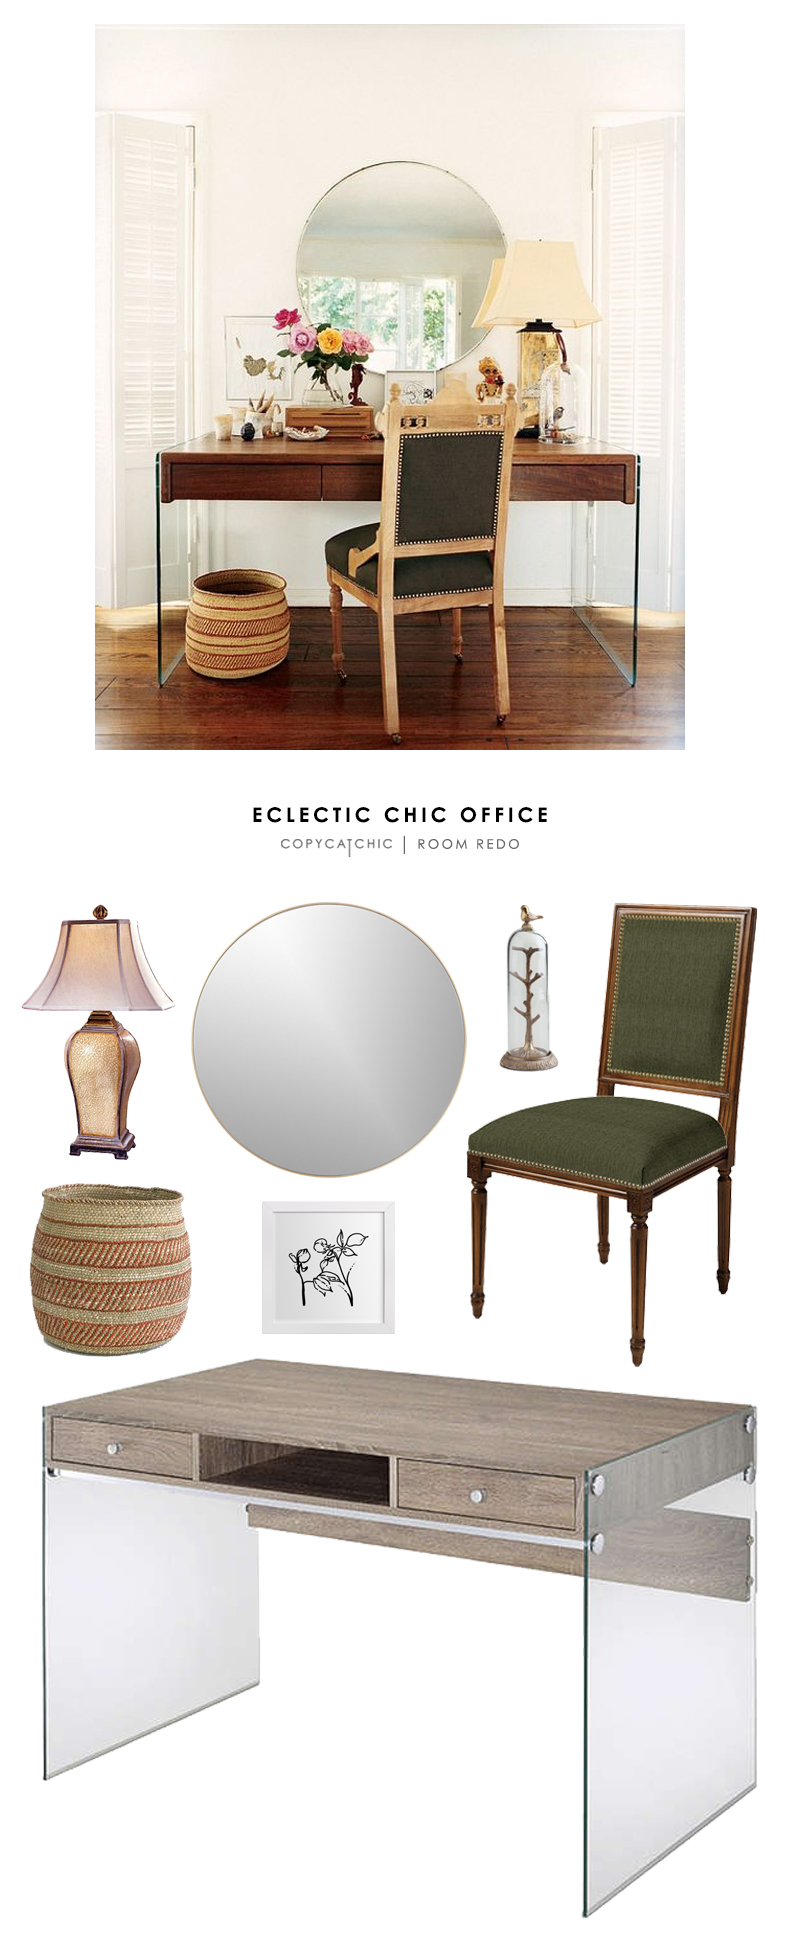 This eclectic, chic office featured on My Domaine is recreated for less by @copycatchic | home looks for less budget home, decor, style and design